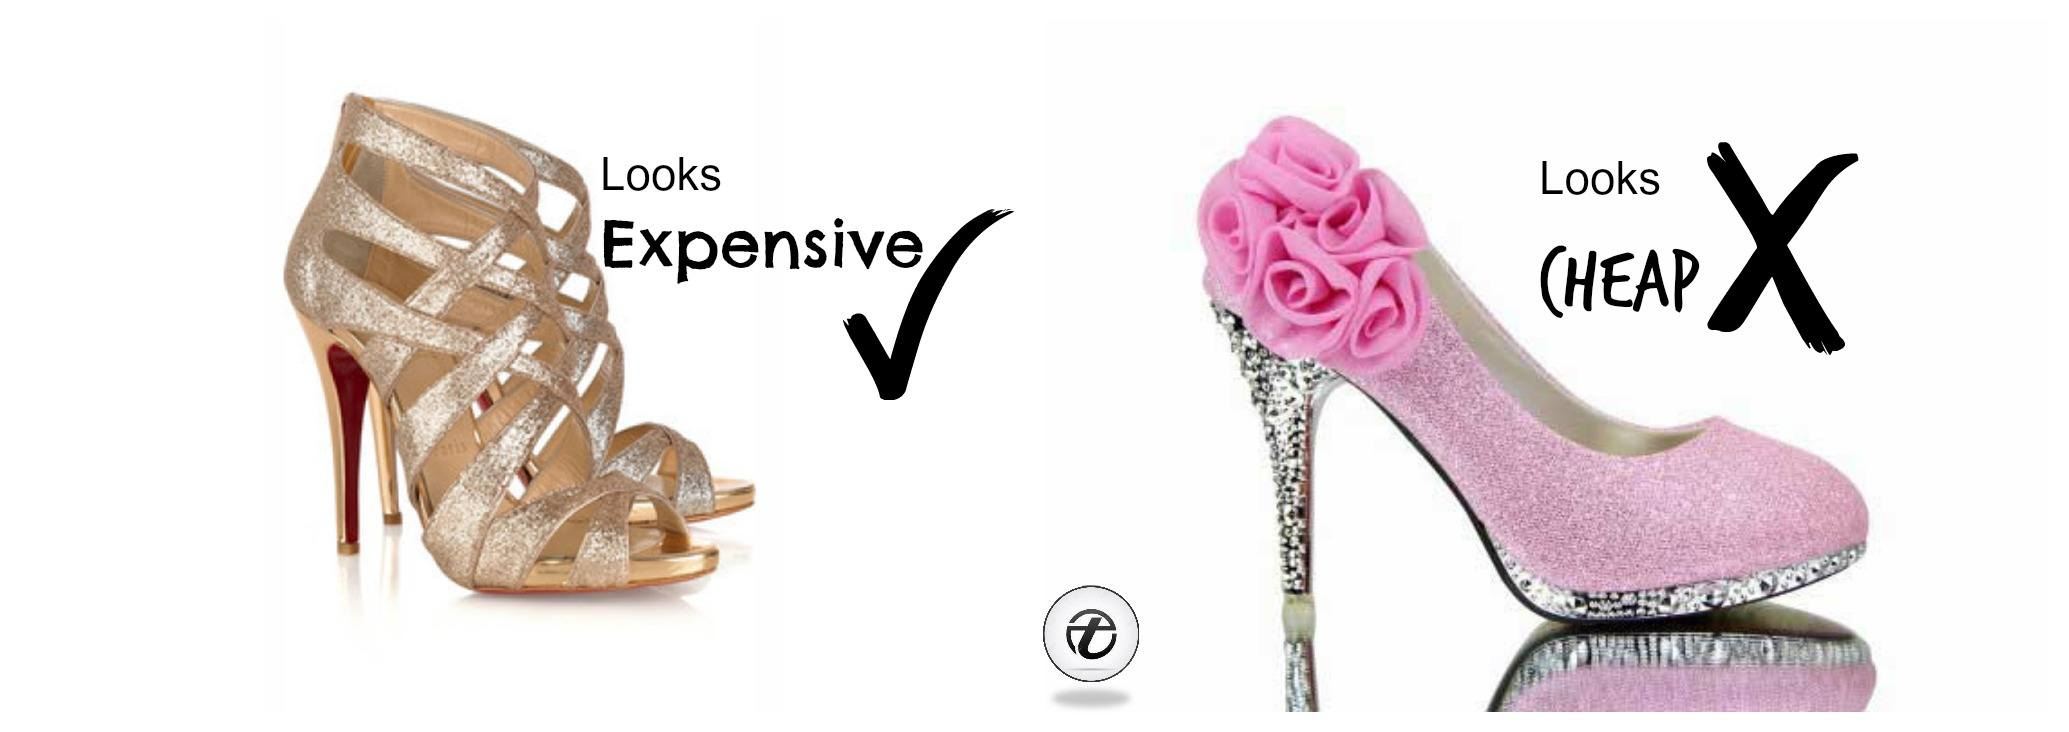 make your outfit look expensive